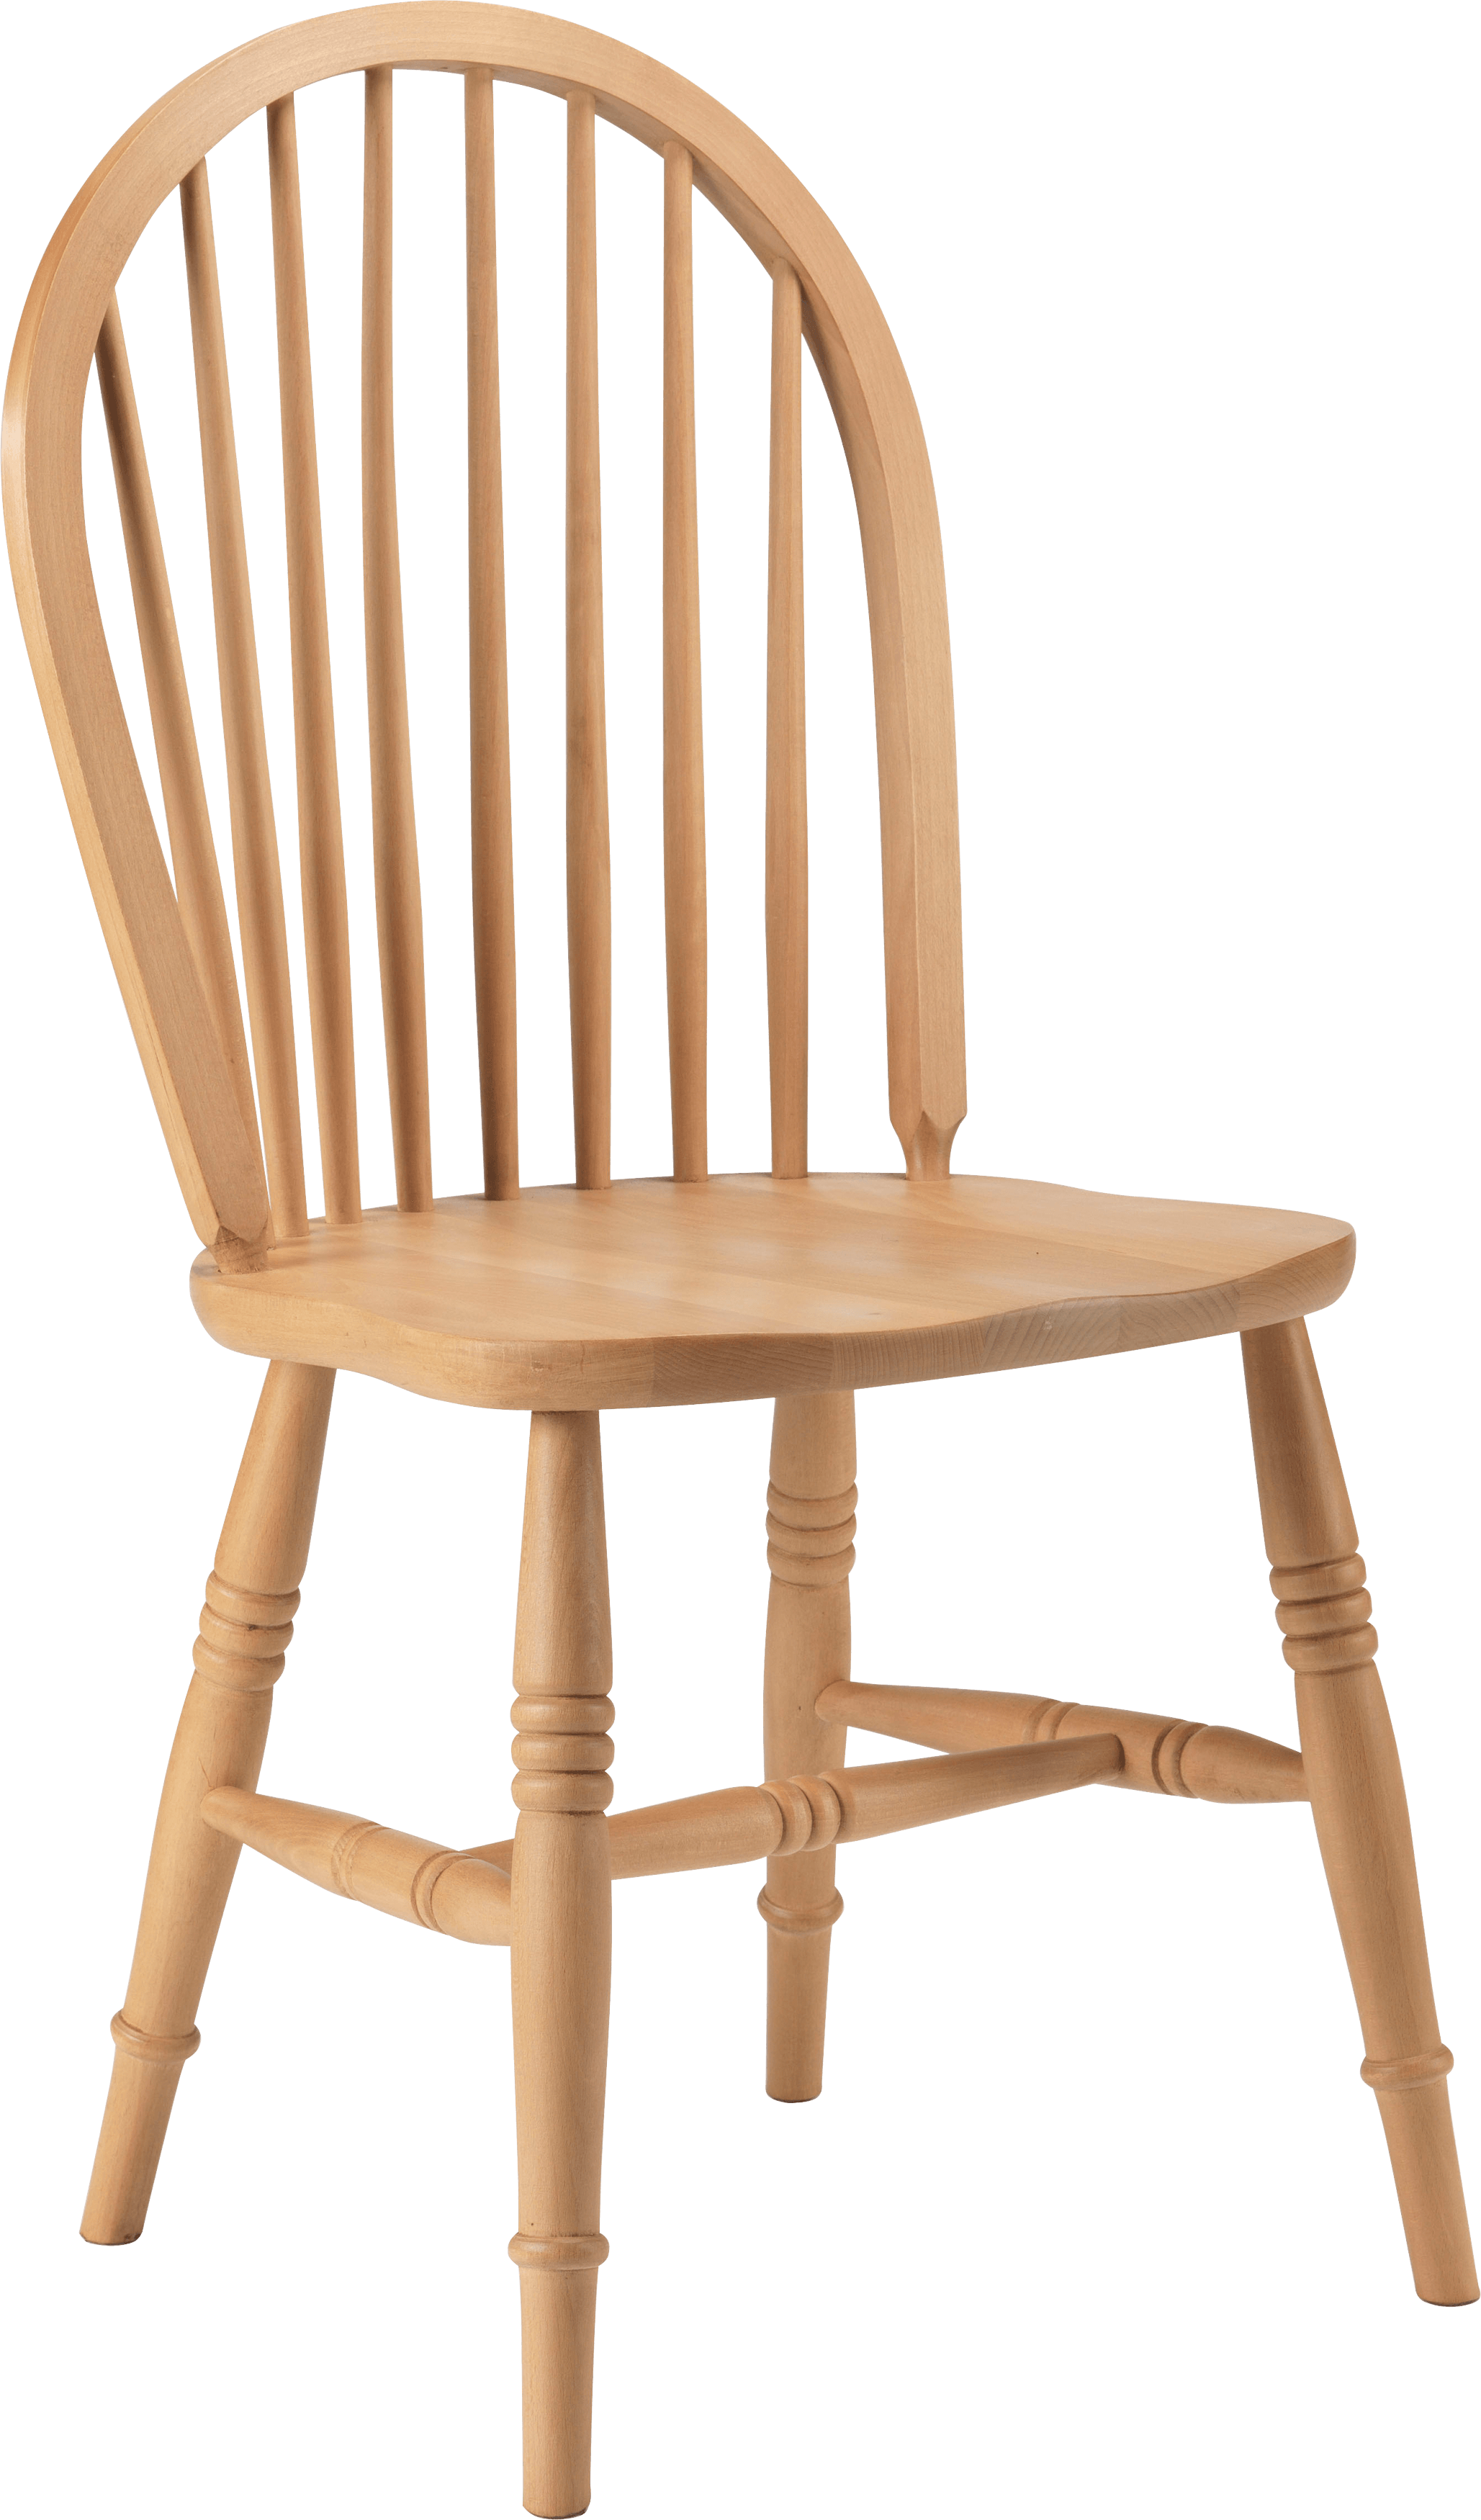 Chair Png Transparent Image - Chair, Transparent background PNG HD thumbnail